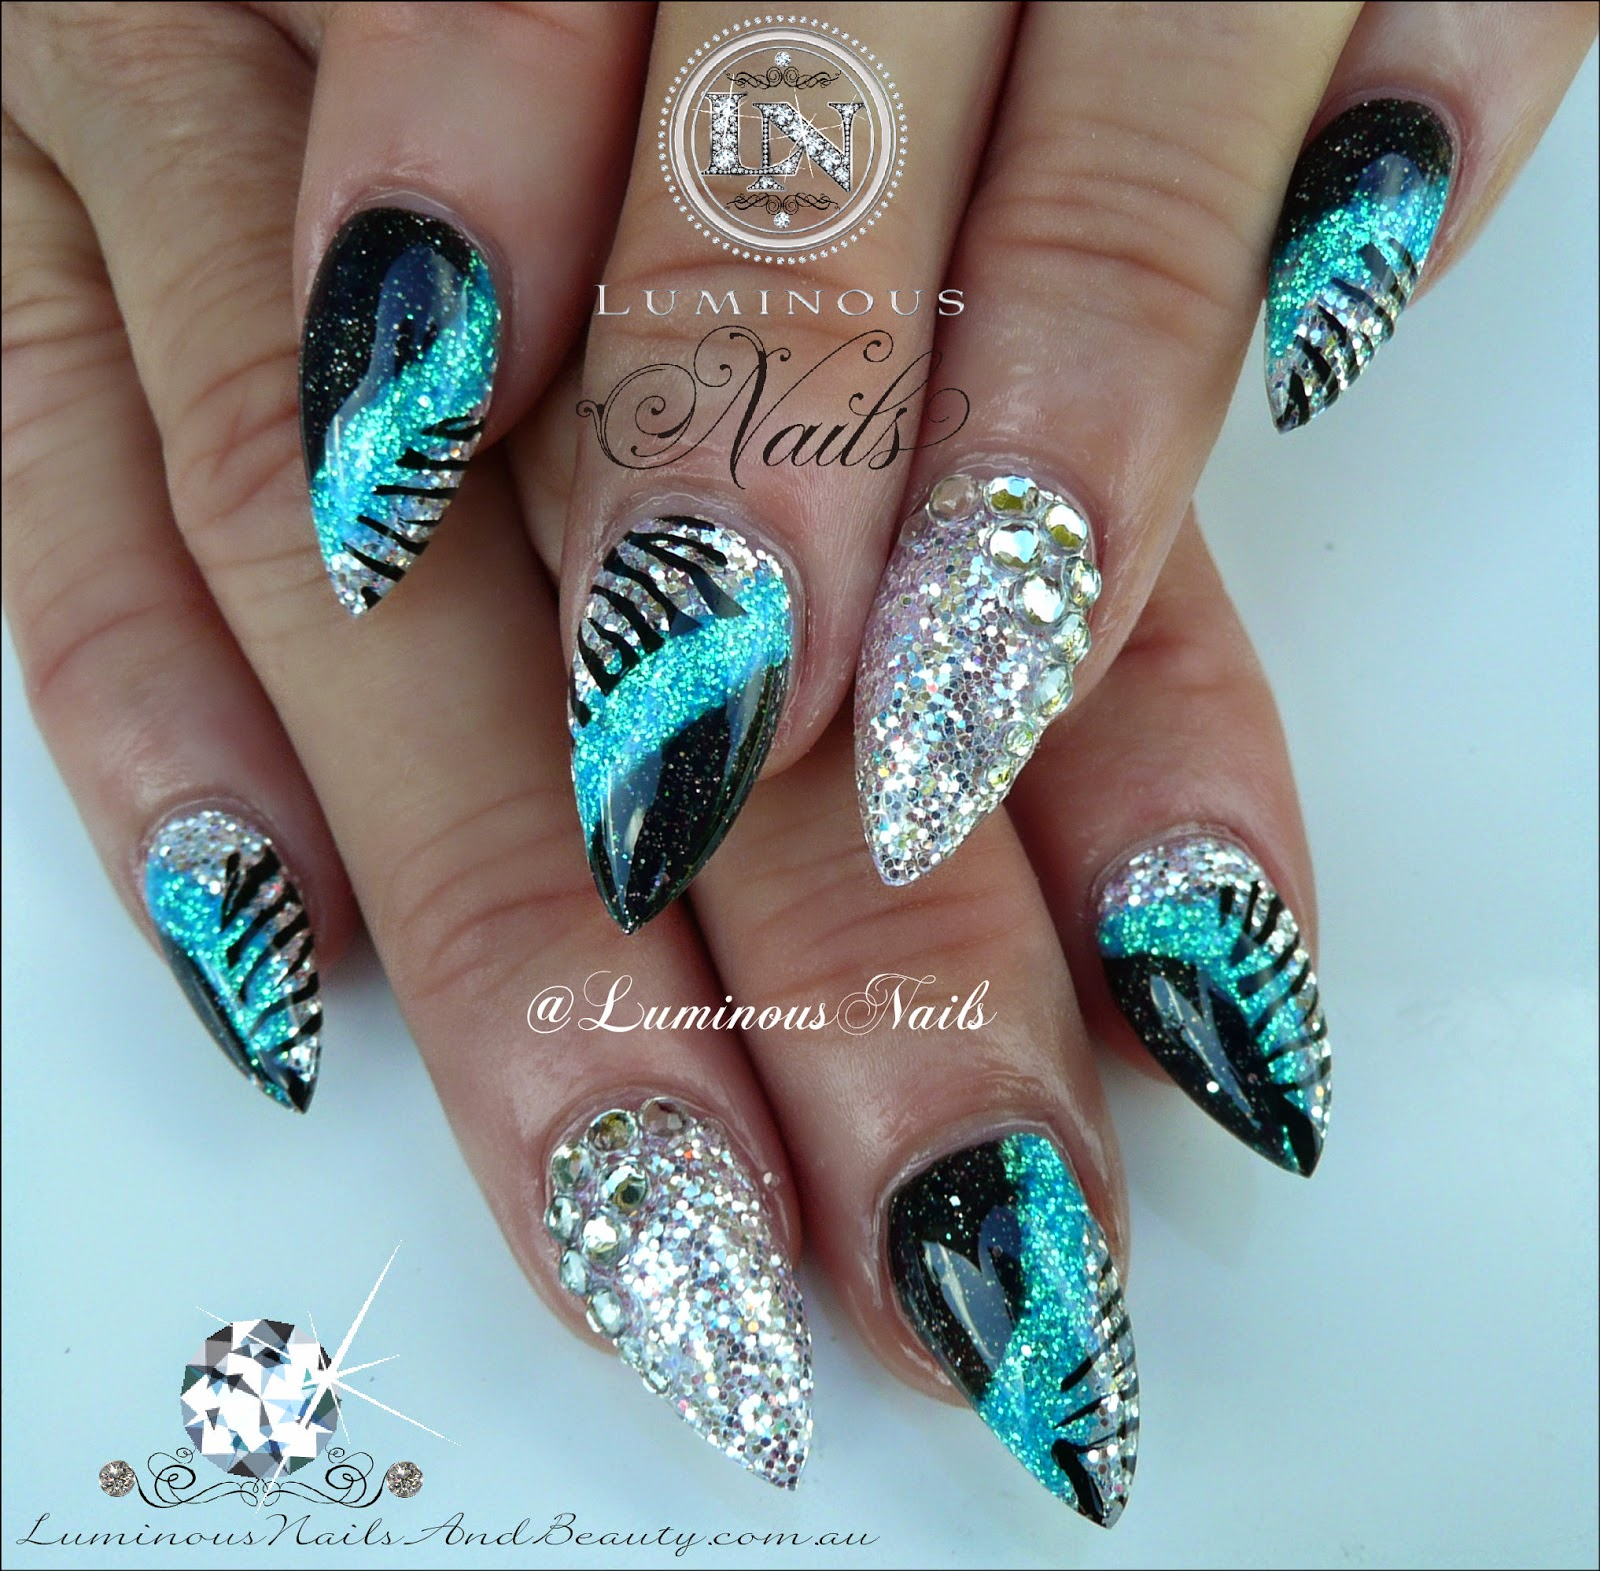 Royal blue and silver nail designs nail art gallery royal blue nail art photos royal blue and silver nail designs prinsesfo Images